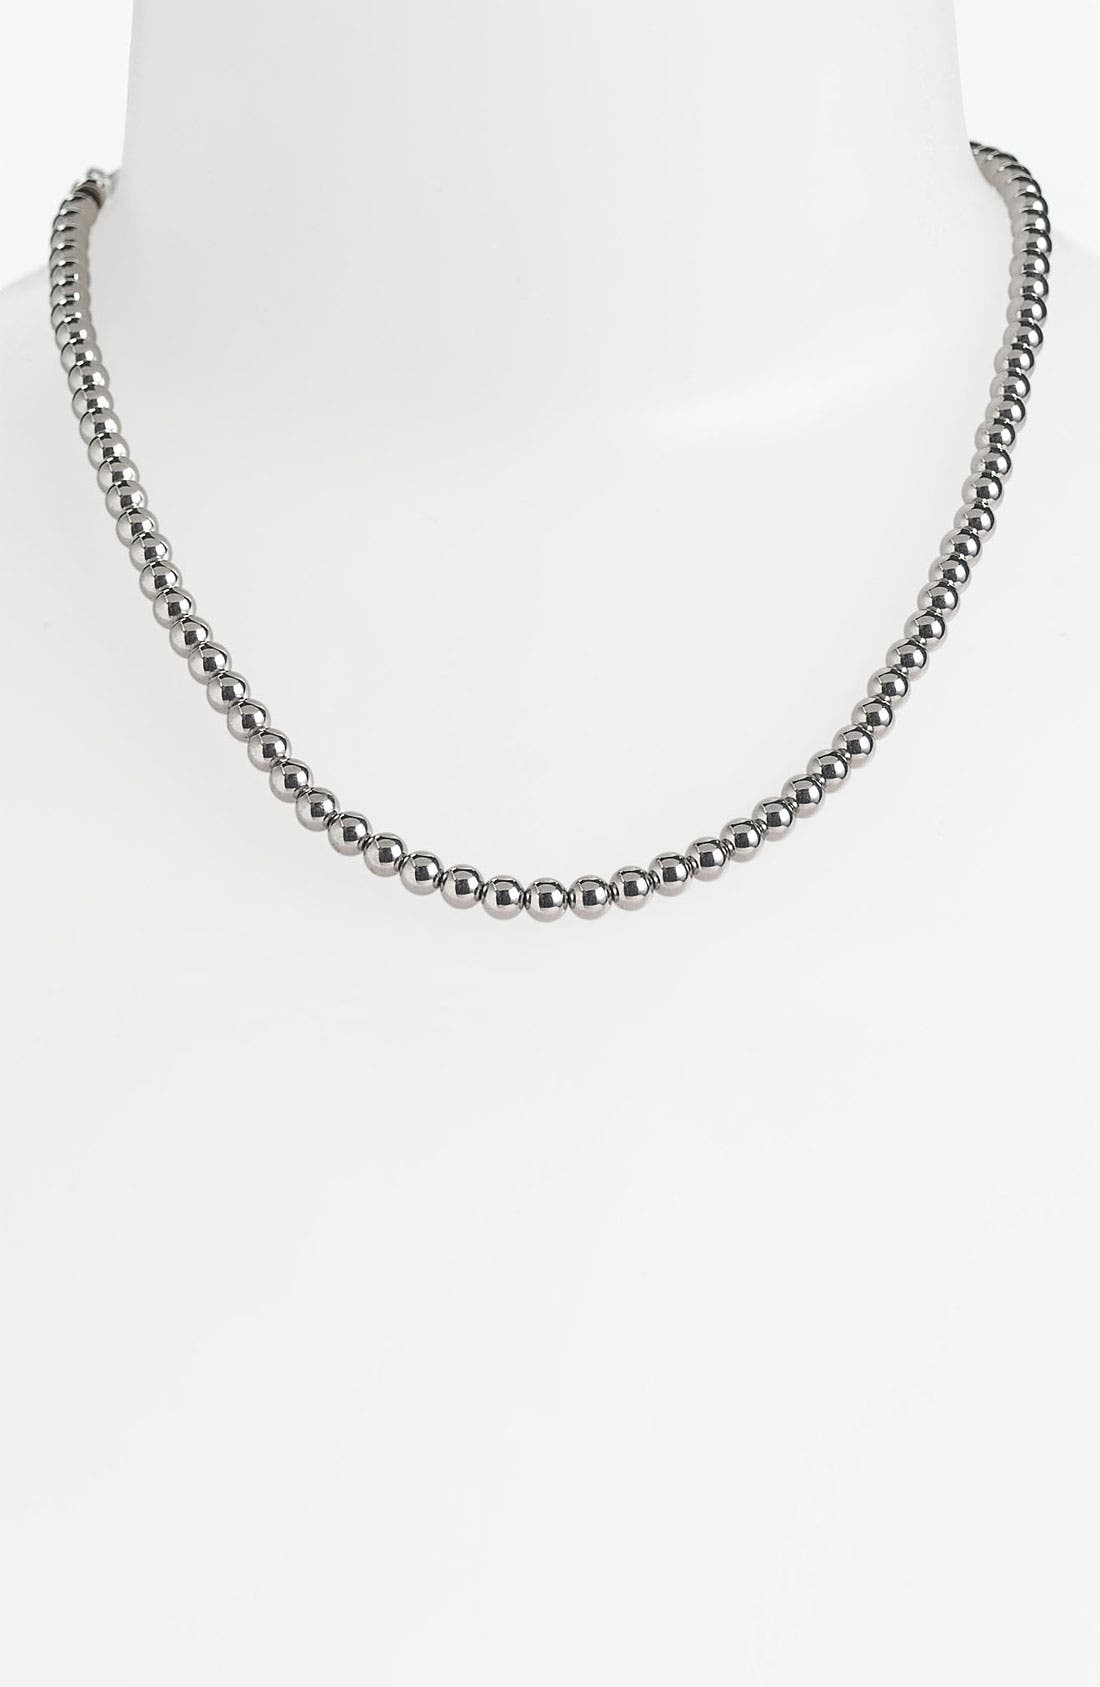 Main Image - Michael Kors 'Classics' Beaded Necklace